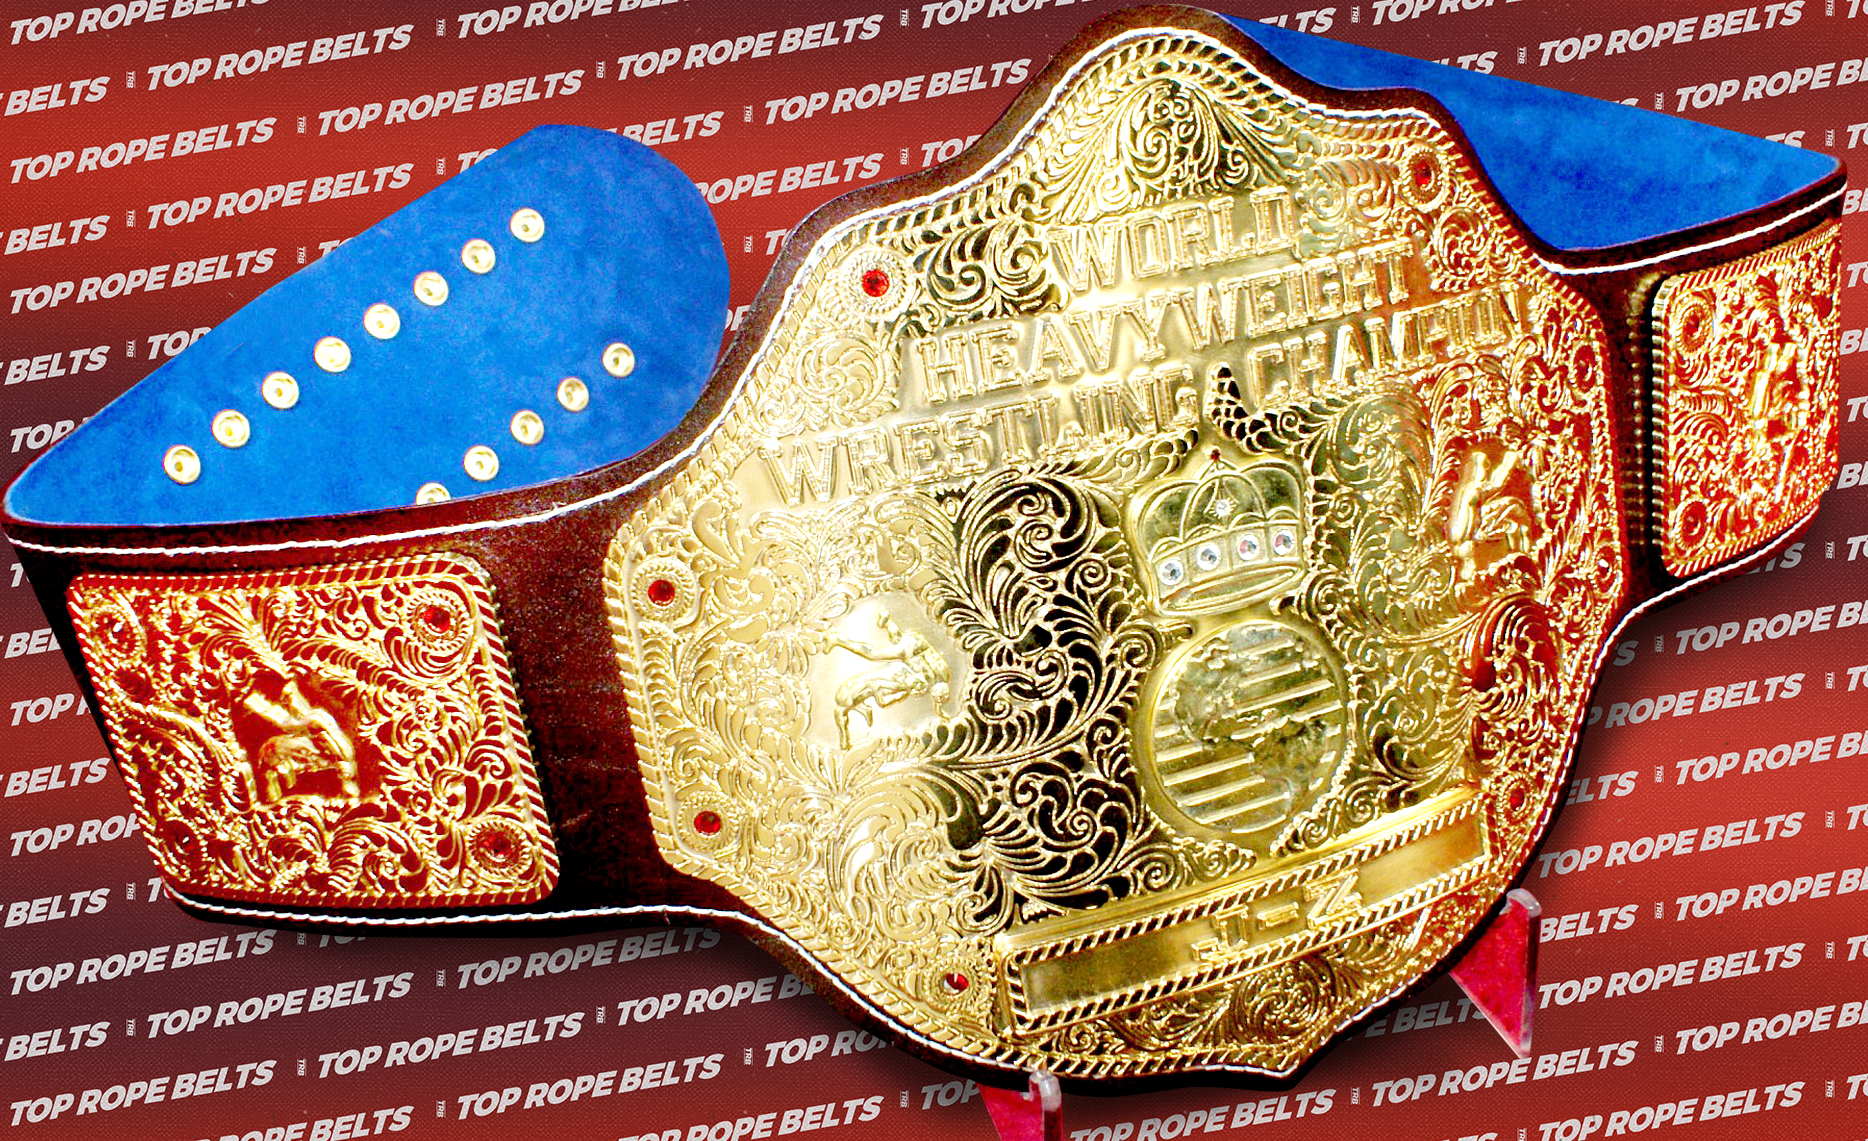 All Gold 80's Big Gold | Top Rope Belts